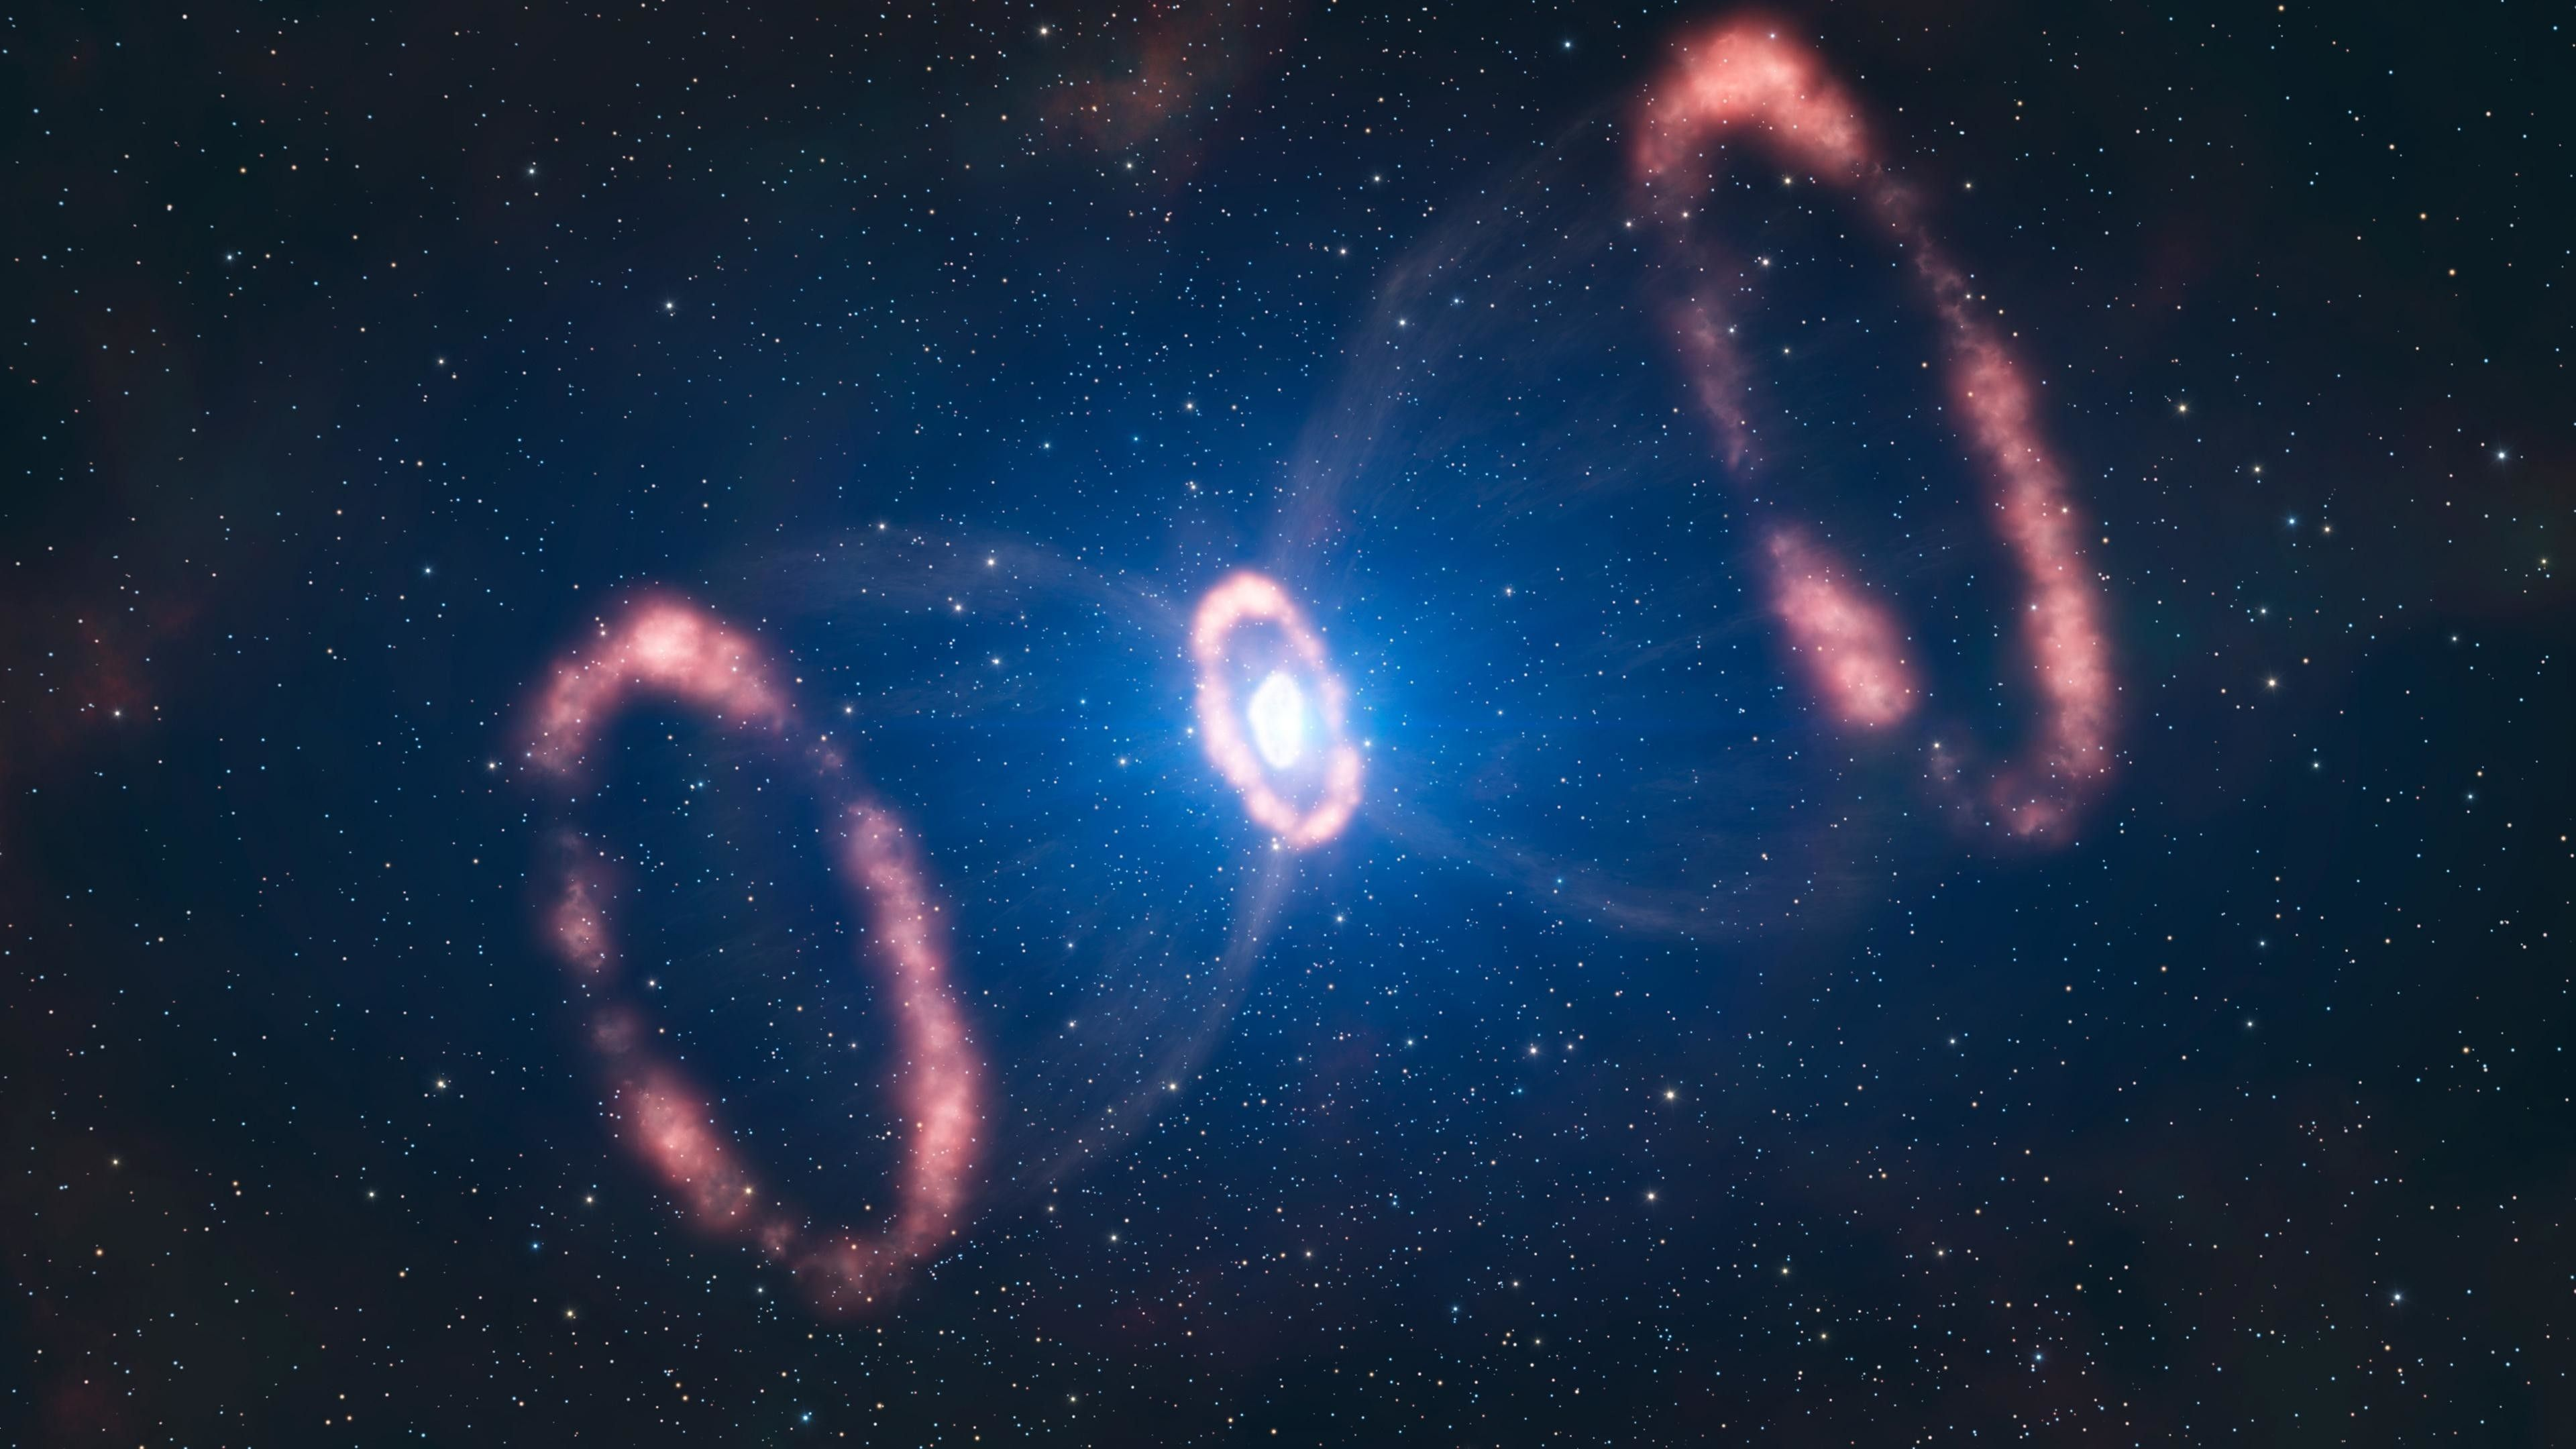 Res 3840x2160 4k Space Wallpapers Gravitational Waves Neutron Star Space And Astronomy